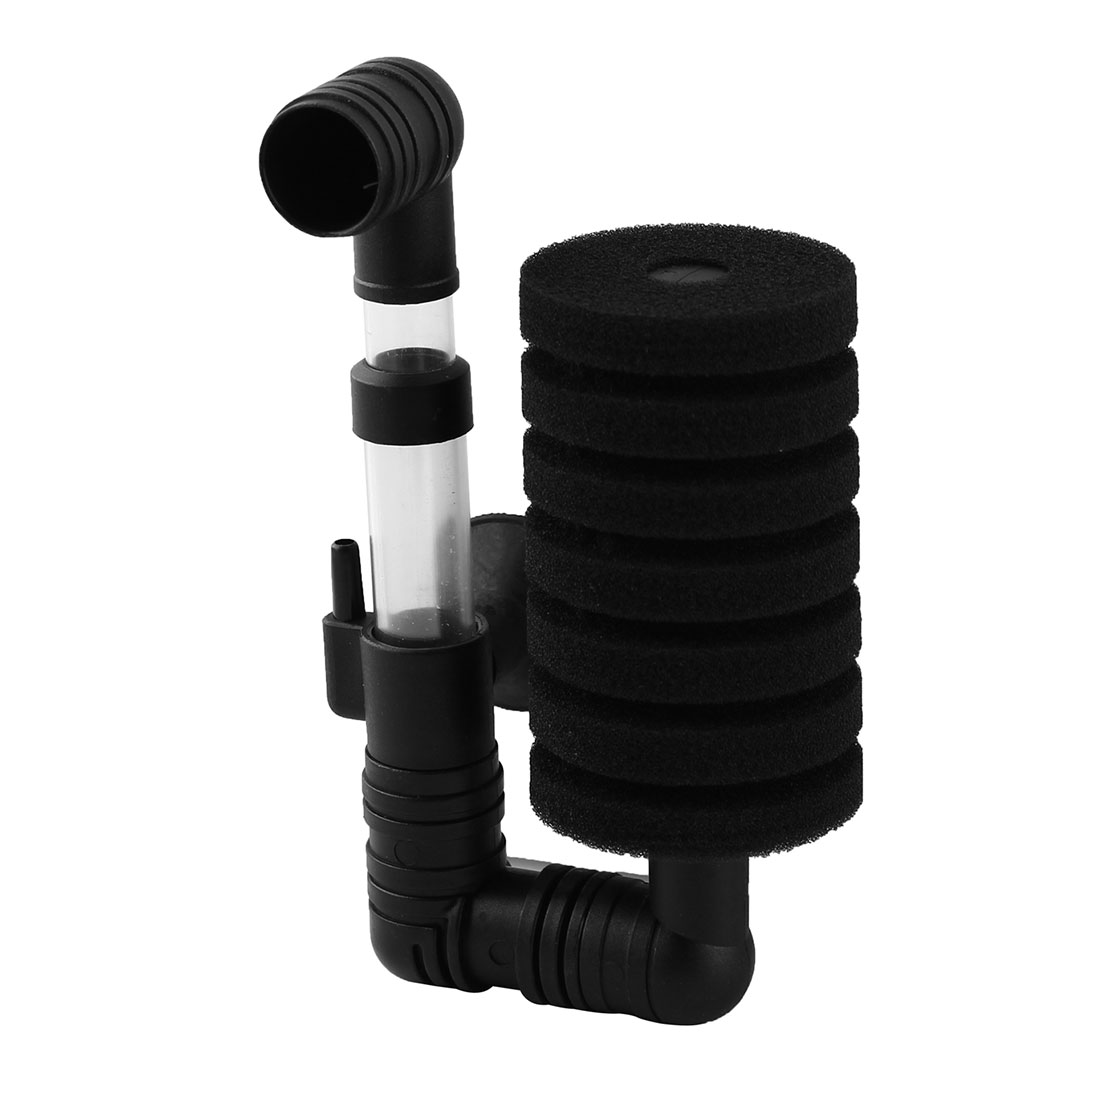 Aquarium Rainbow Bio-Sponge Filter Black